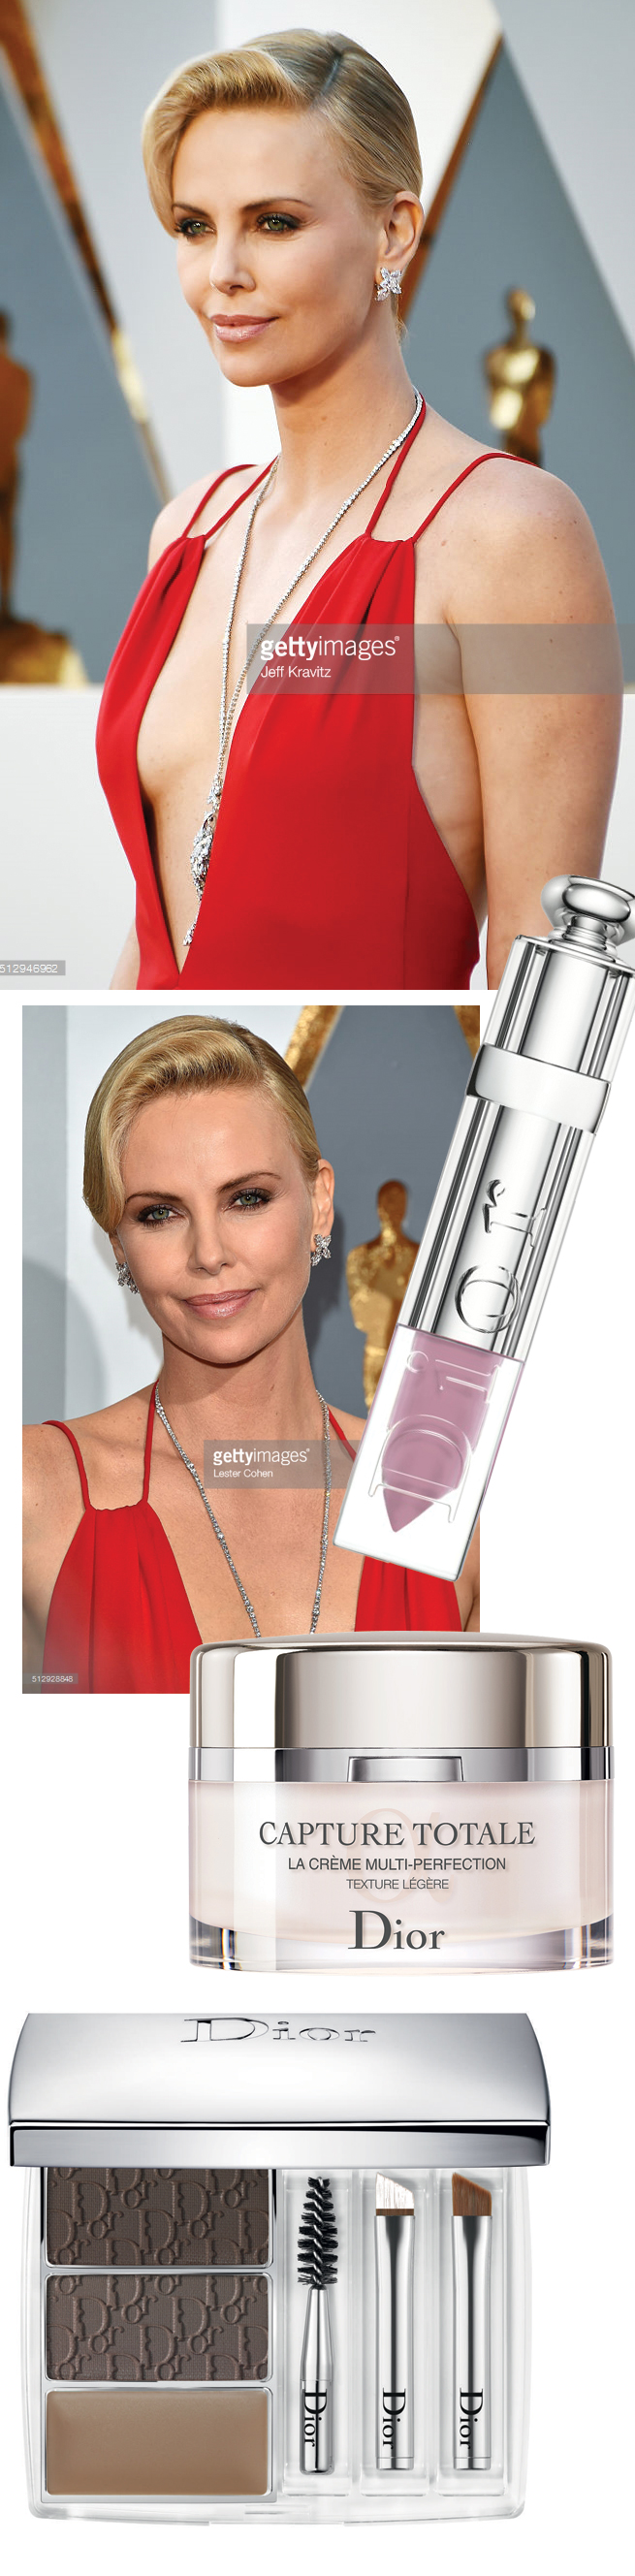 Charlize Theron, Oscars 2016, Dior Beauty, Red Carpet, Red Carpet Beauty Look, Perfect Wedding Magazine